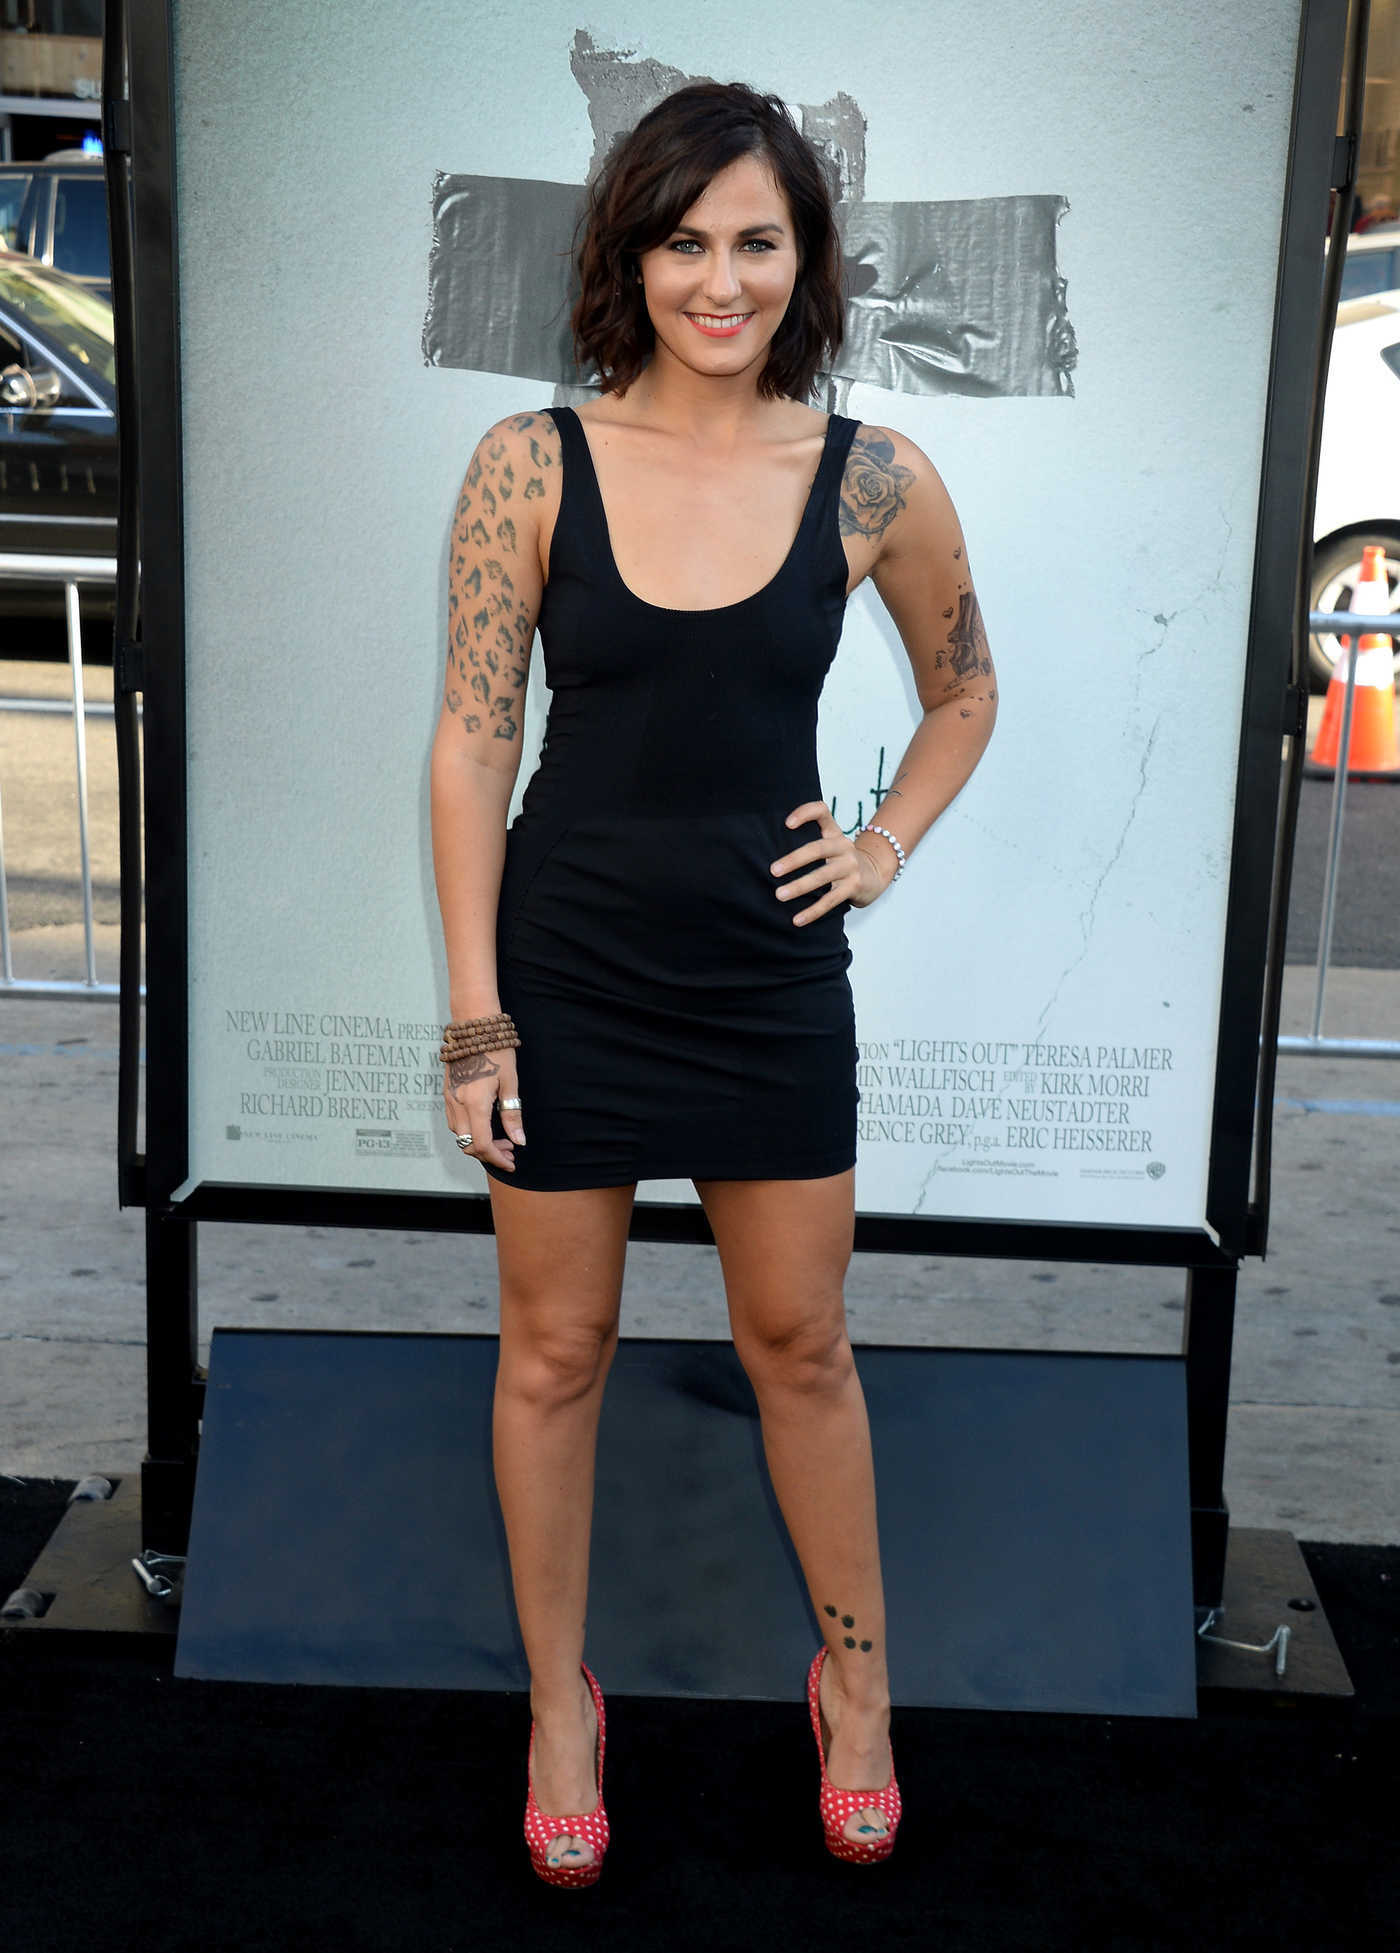 Scout Taylor Compton at the Lights Out Premiere in Los Angeles 07/19/2016